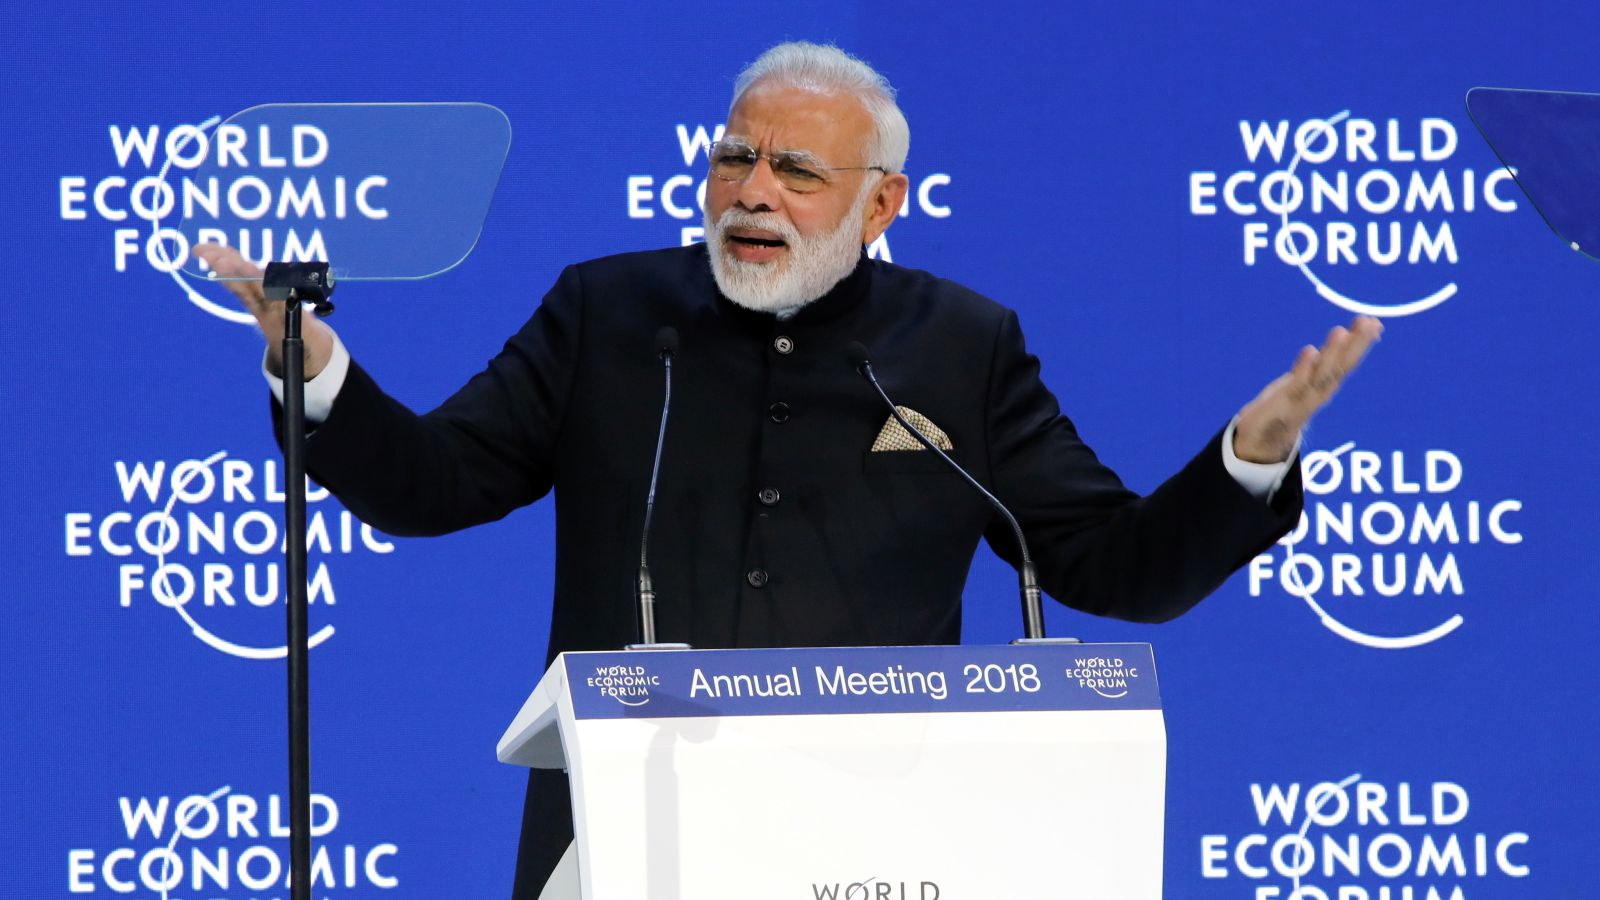 India's Prime Minister Narendra Modi gestures as he speaks during the Opening Plenary during the World Economic Forum (WEF) annual meeting in Davos, Switzerland, January 23, 2018